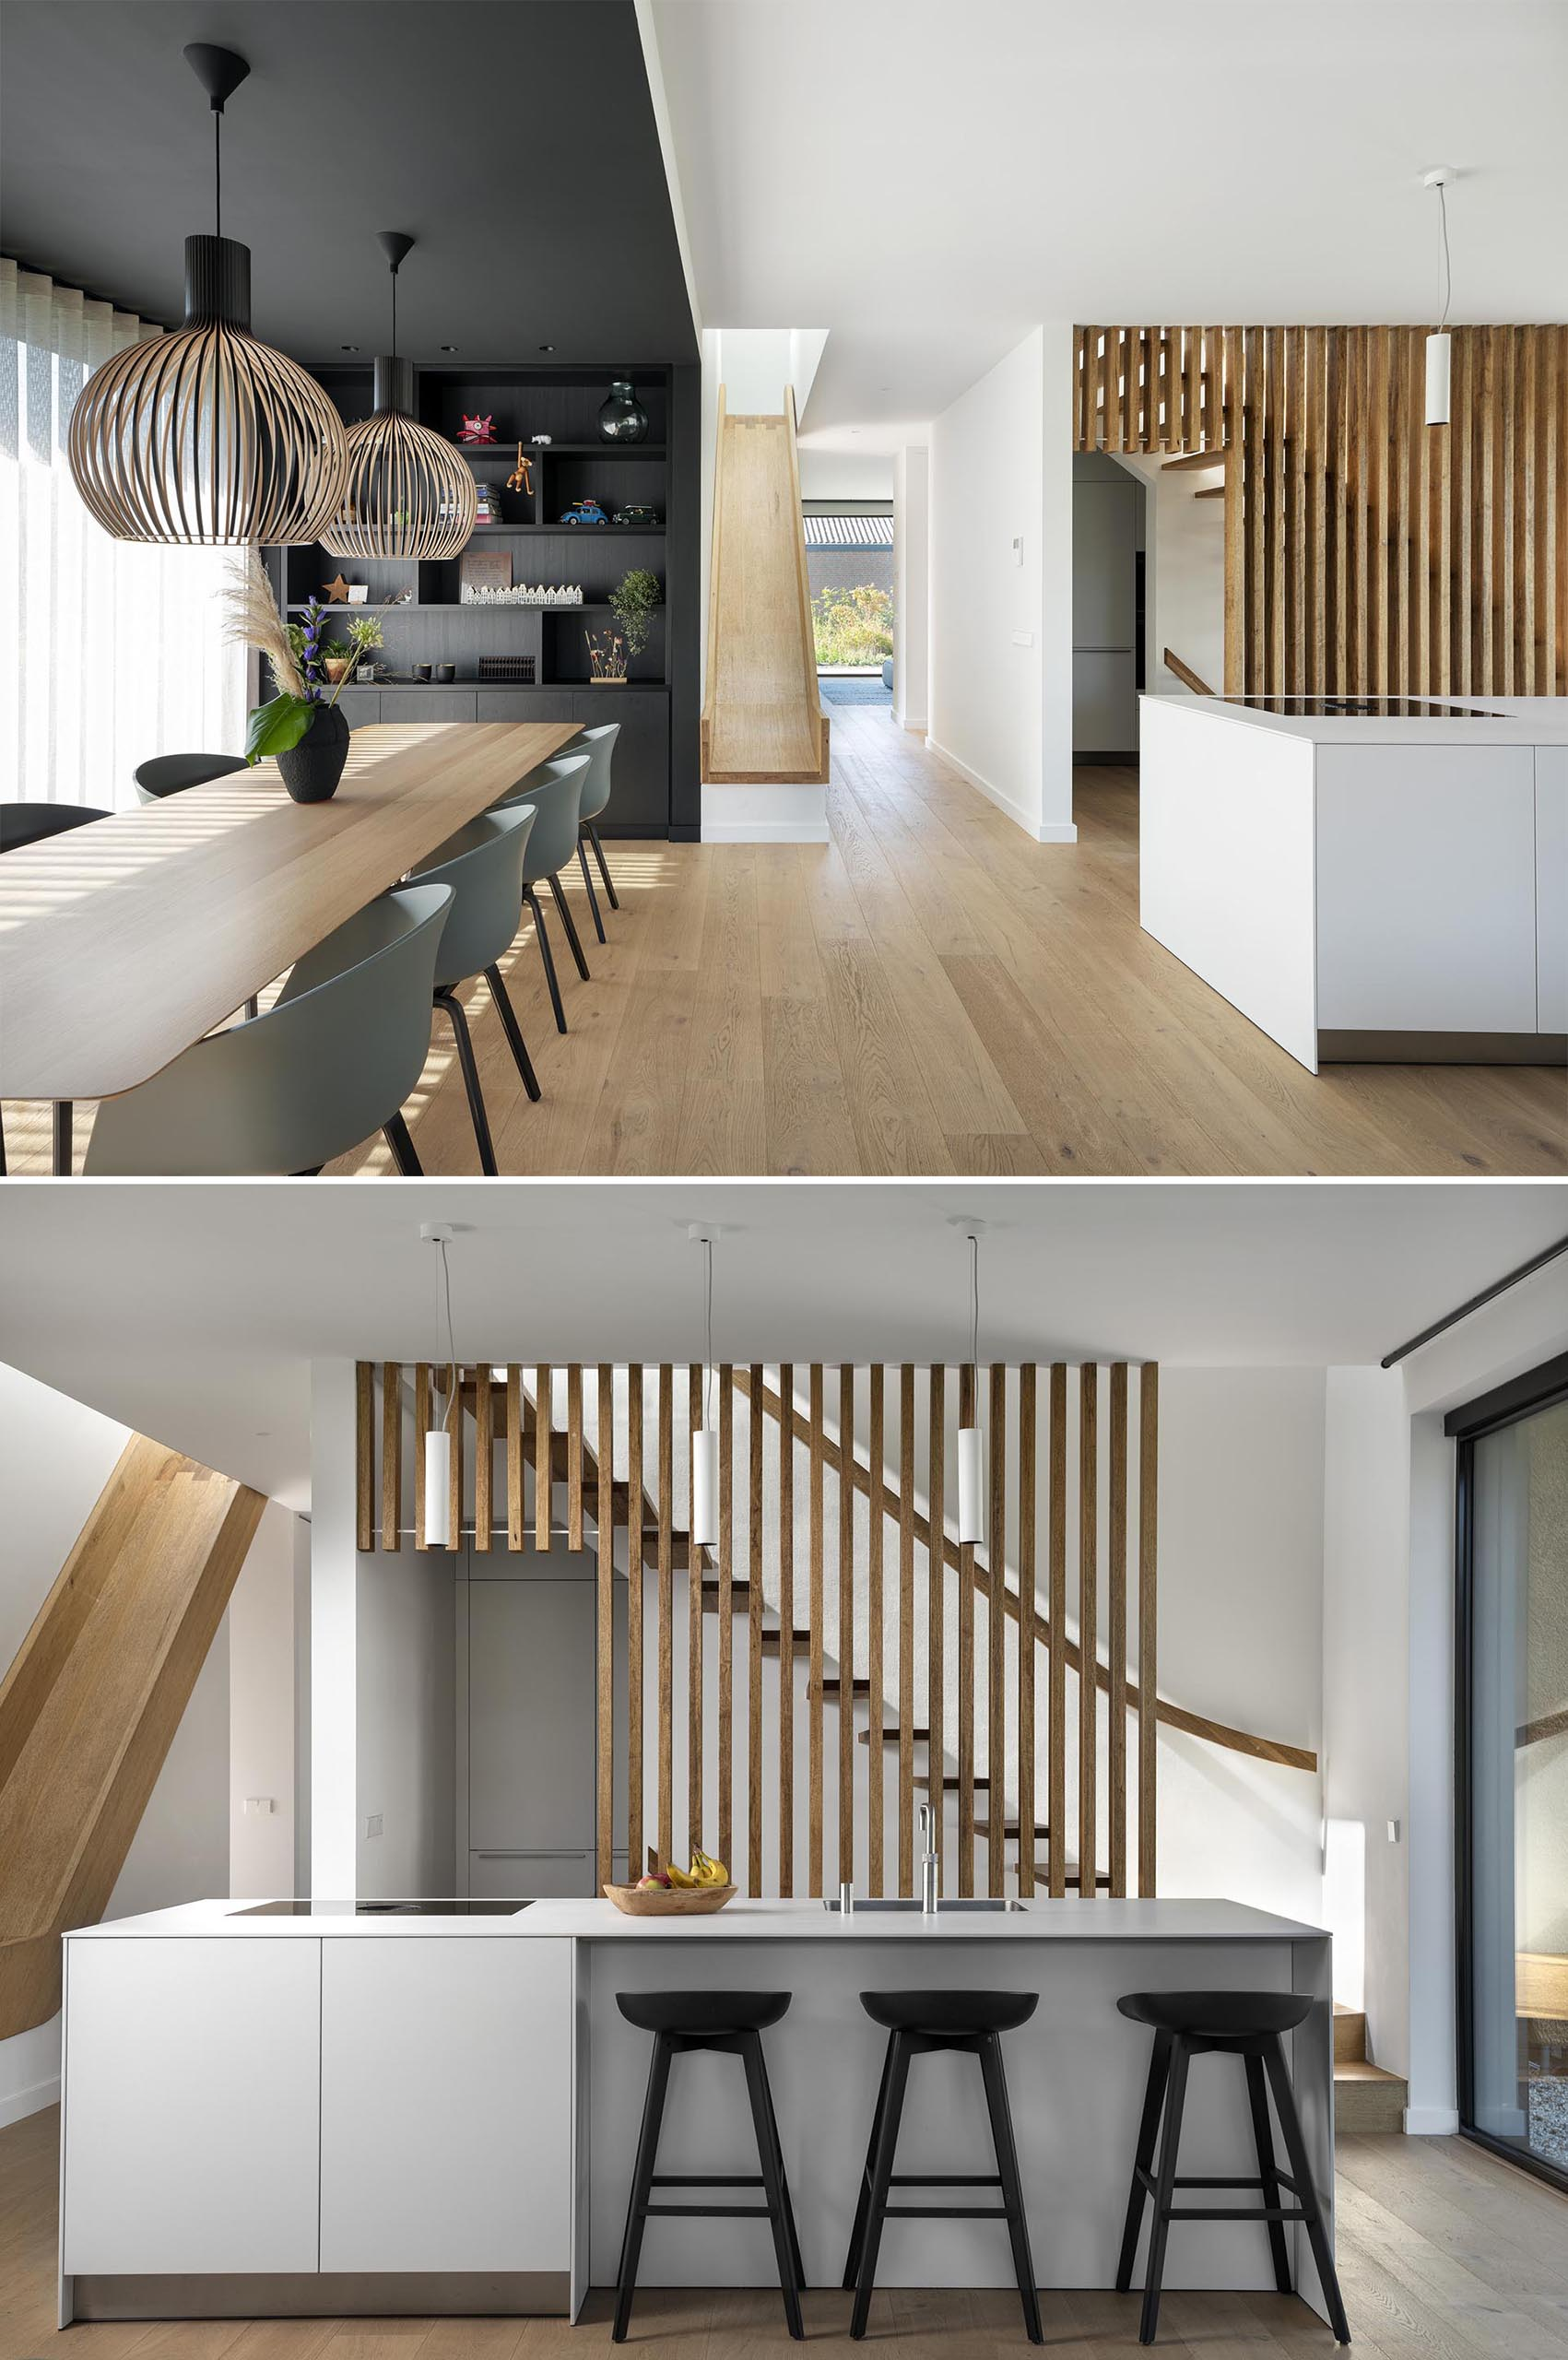 A modern home with an open plan dining room and kitchen. Black has been used on the wall and ceiling to define the dining room, while the kitchen has a wood slat backdrop that acts as a safety barrier for the stairs.